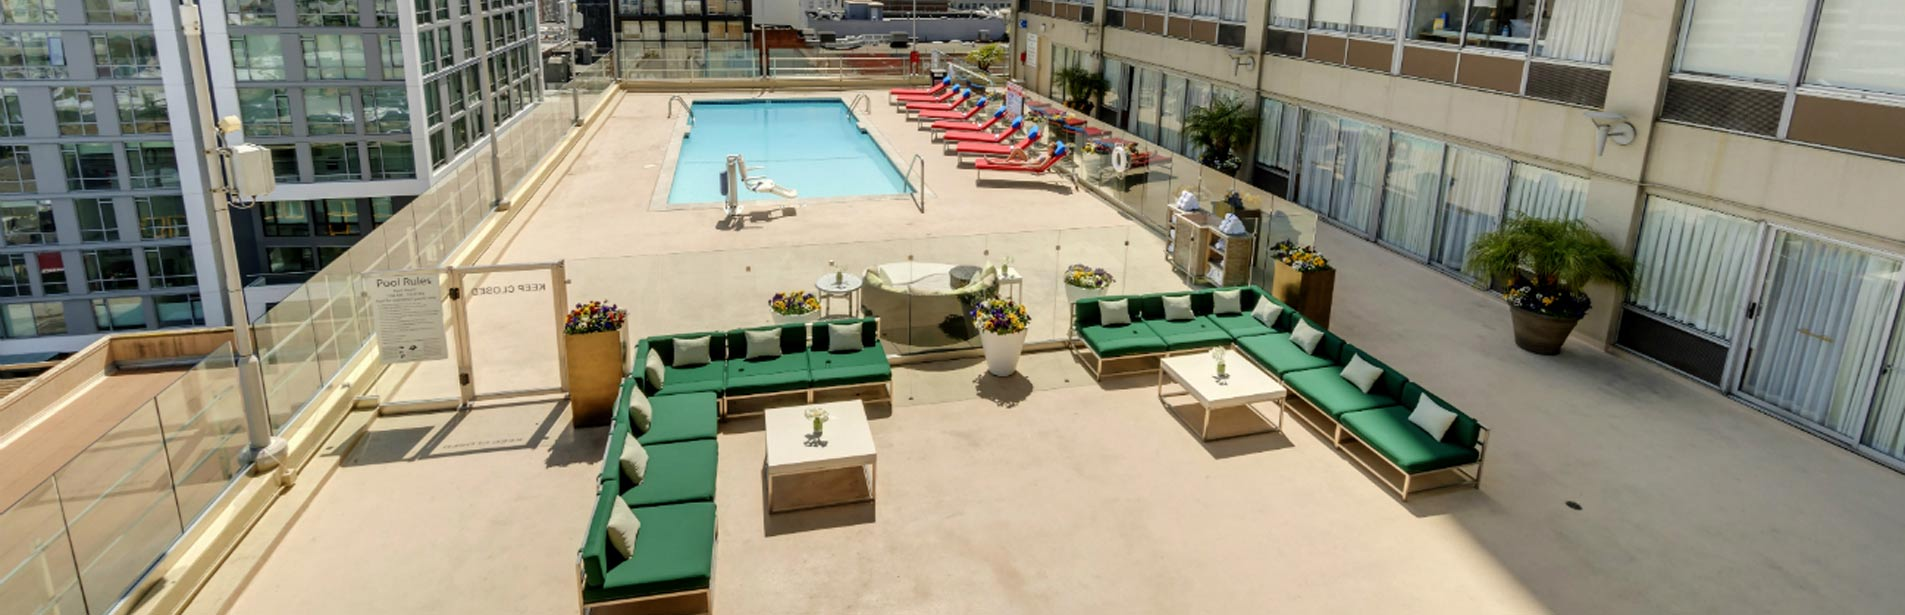 Our roof top pool and sun deck sitting area, showing lounge chairs and pool lift.